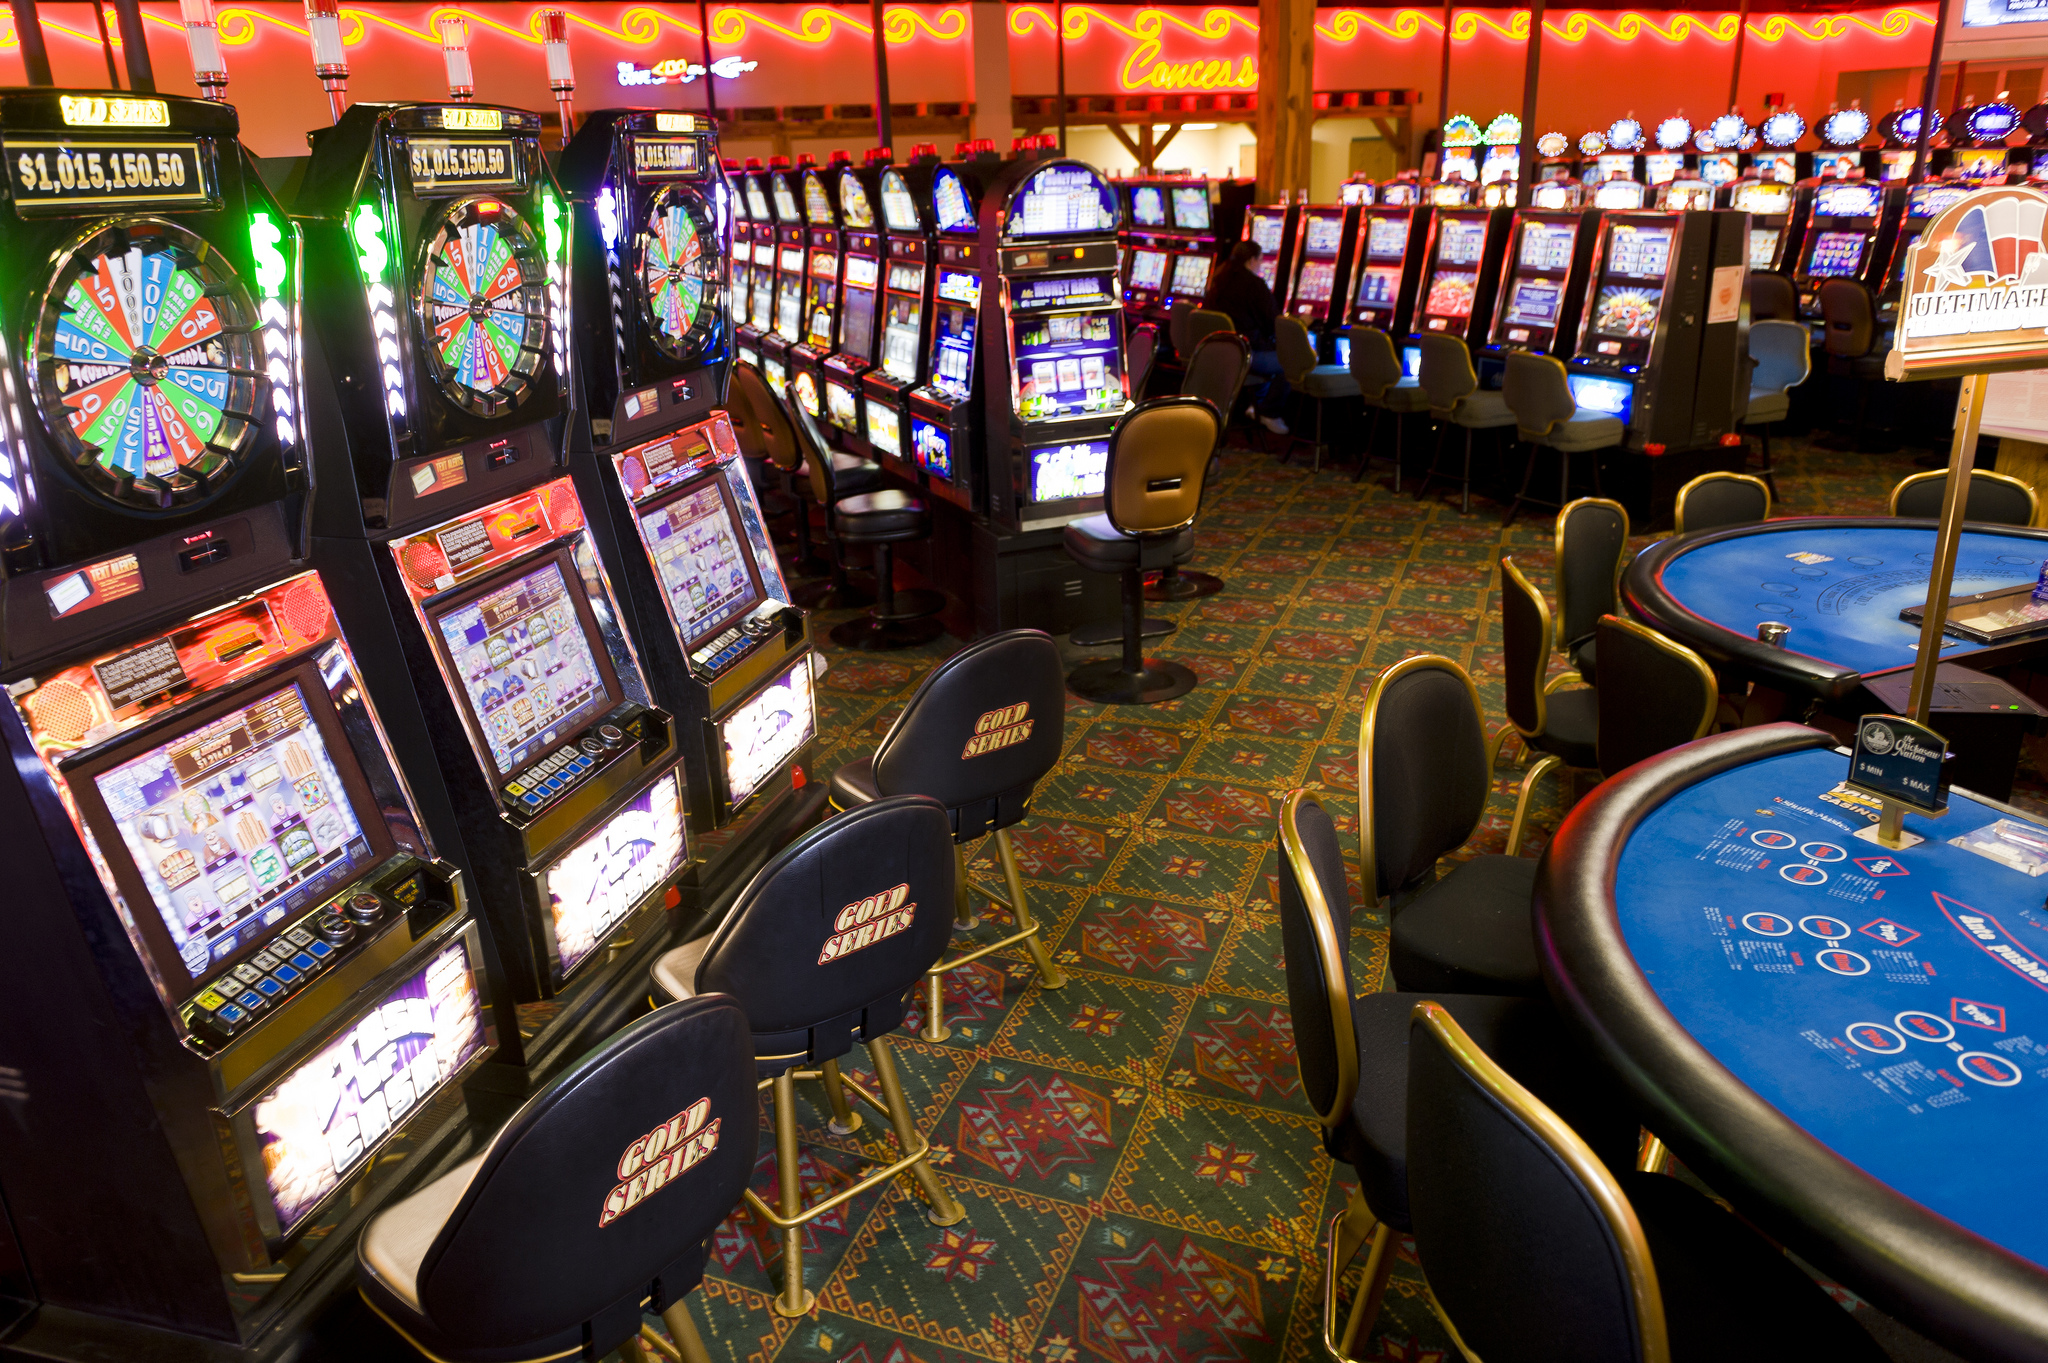 Top 10 Tips for Staying Safe When Playing in Online Casinos